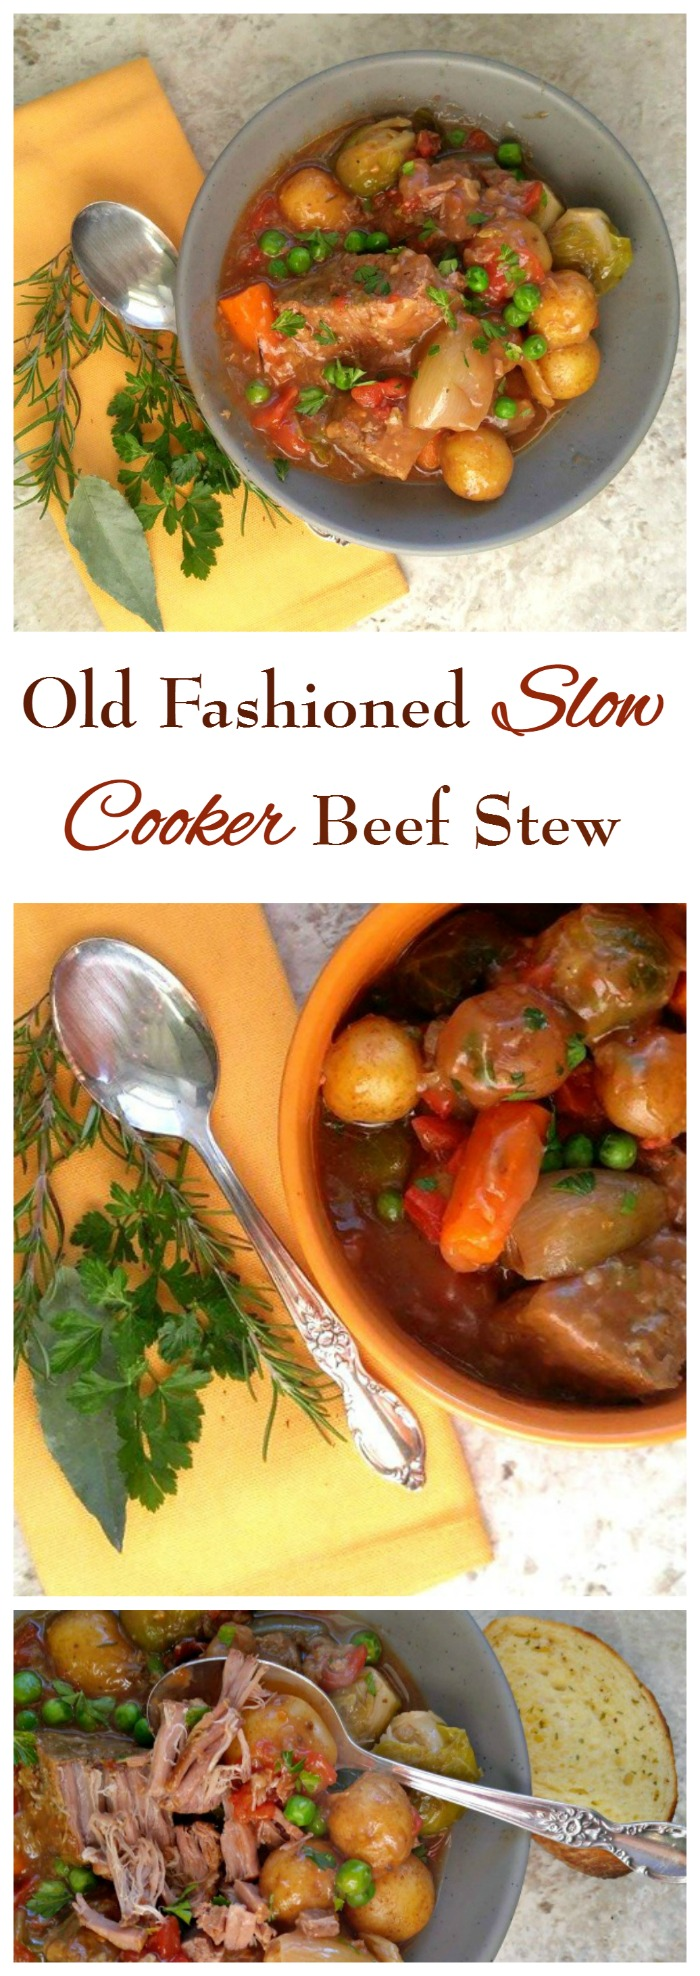 This fork tender old fashioned slow cooker beef stew is made just the way Momma made it! Rich and savory with big chunks of meat and vegetables are the ultimate comfort food.